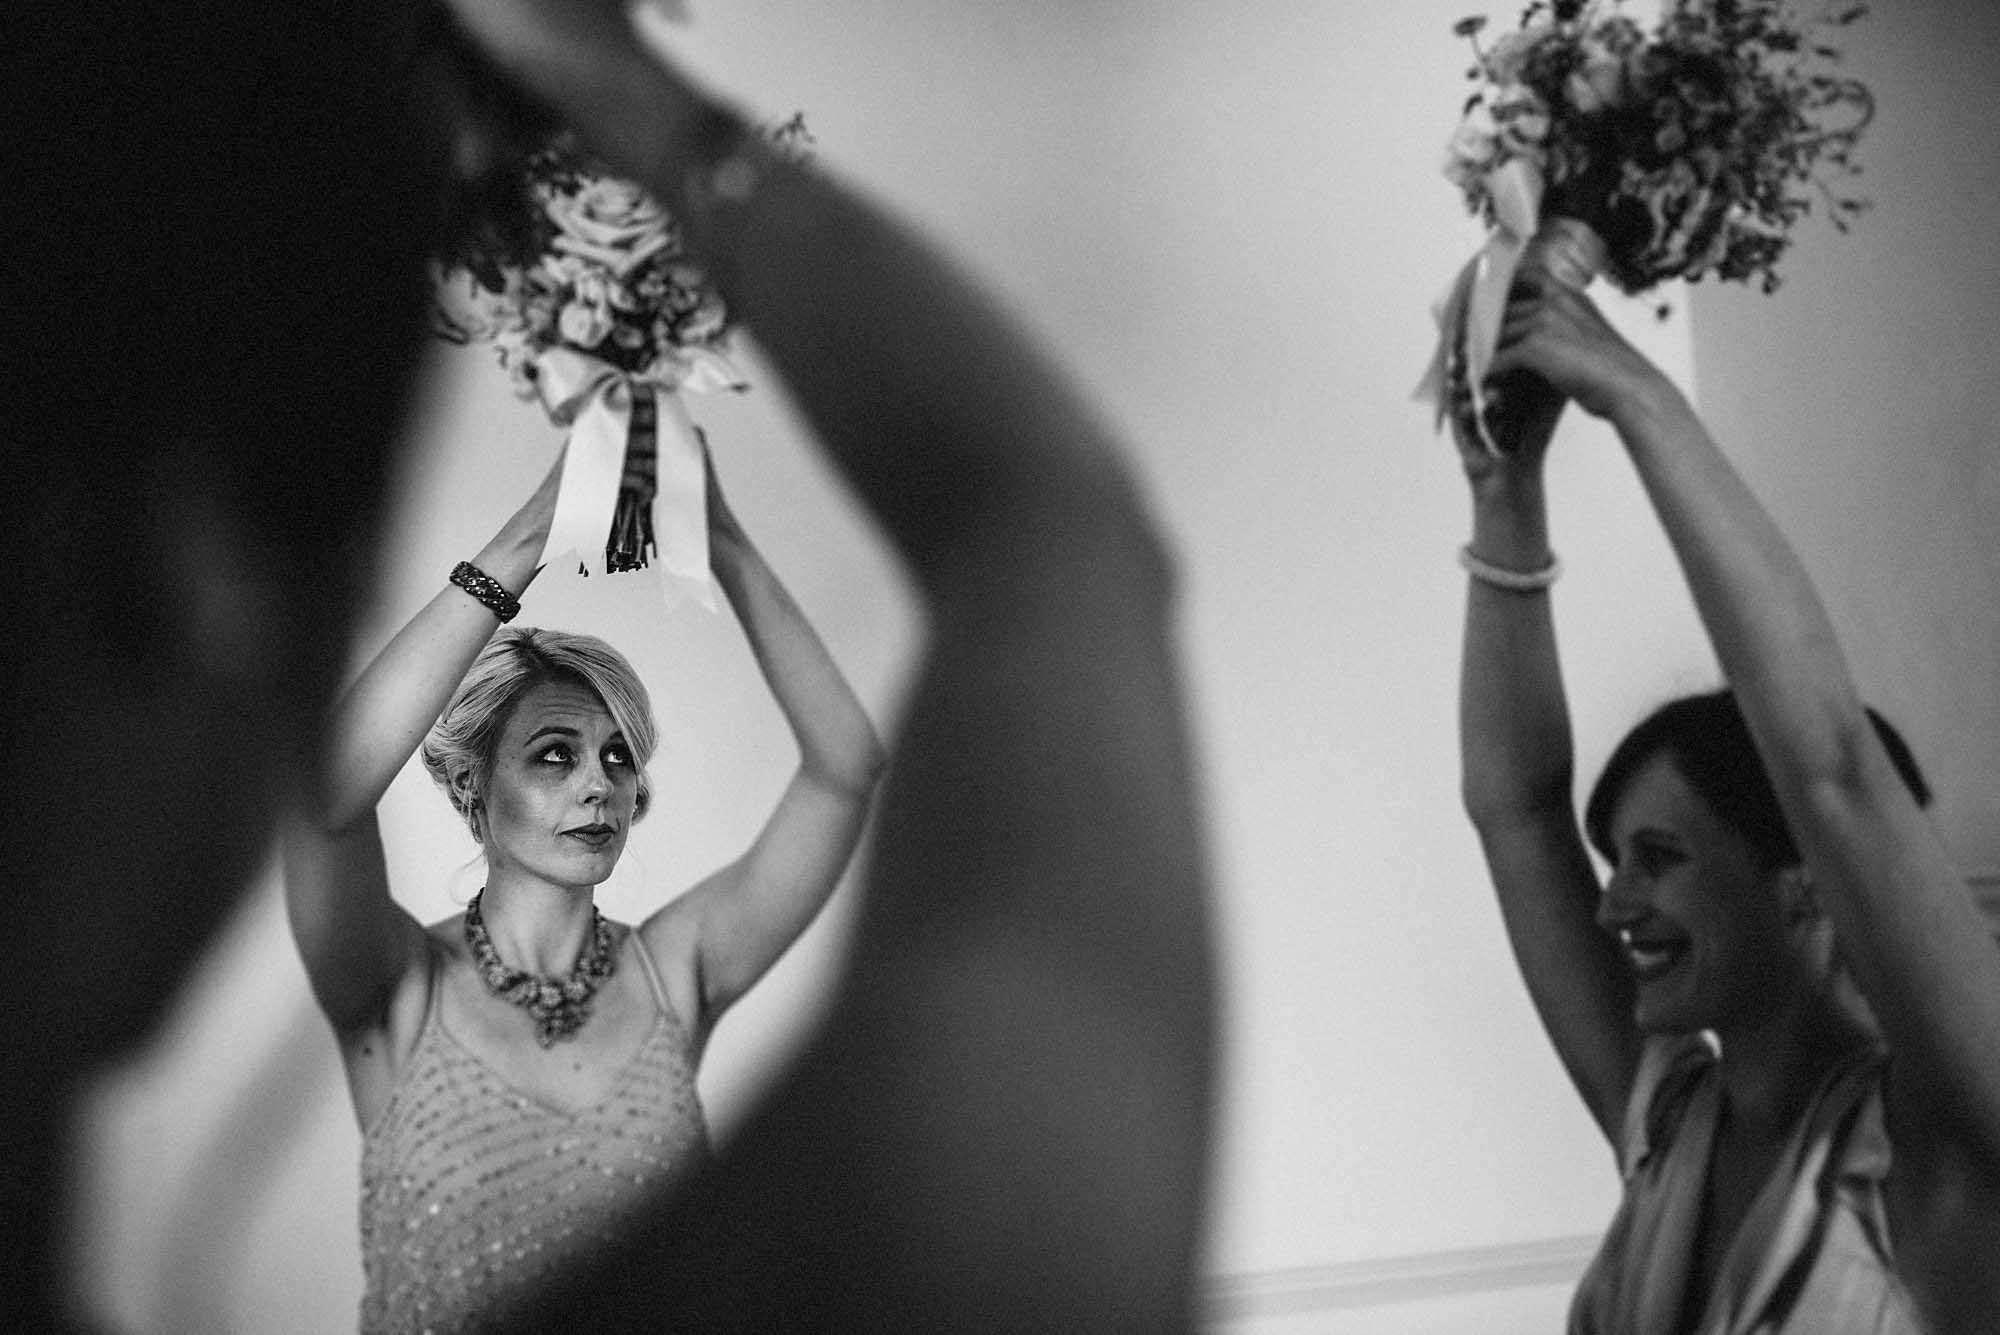 Narborough Hall Gardens wedding photography 12 Completed